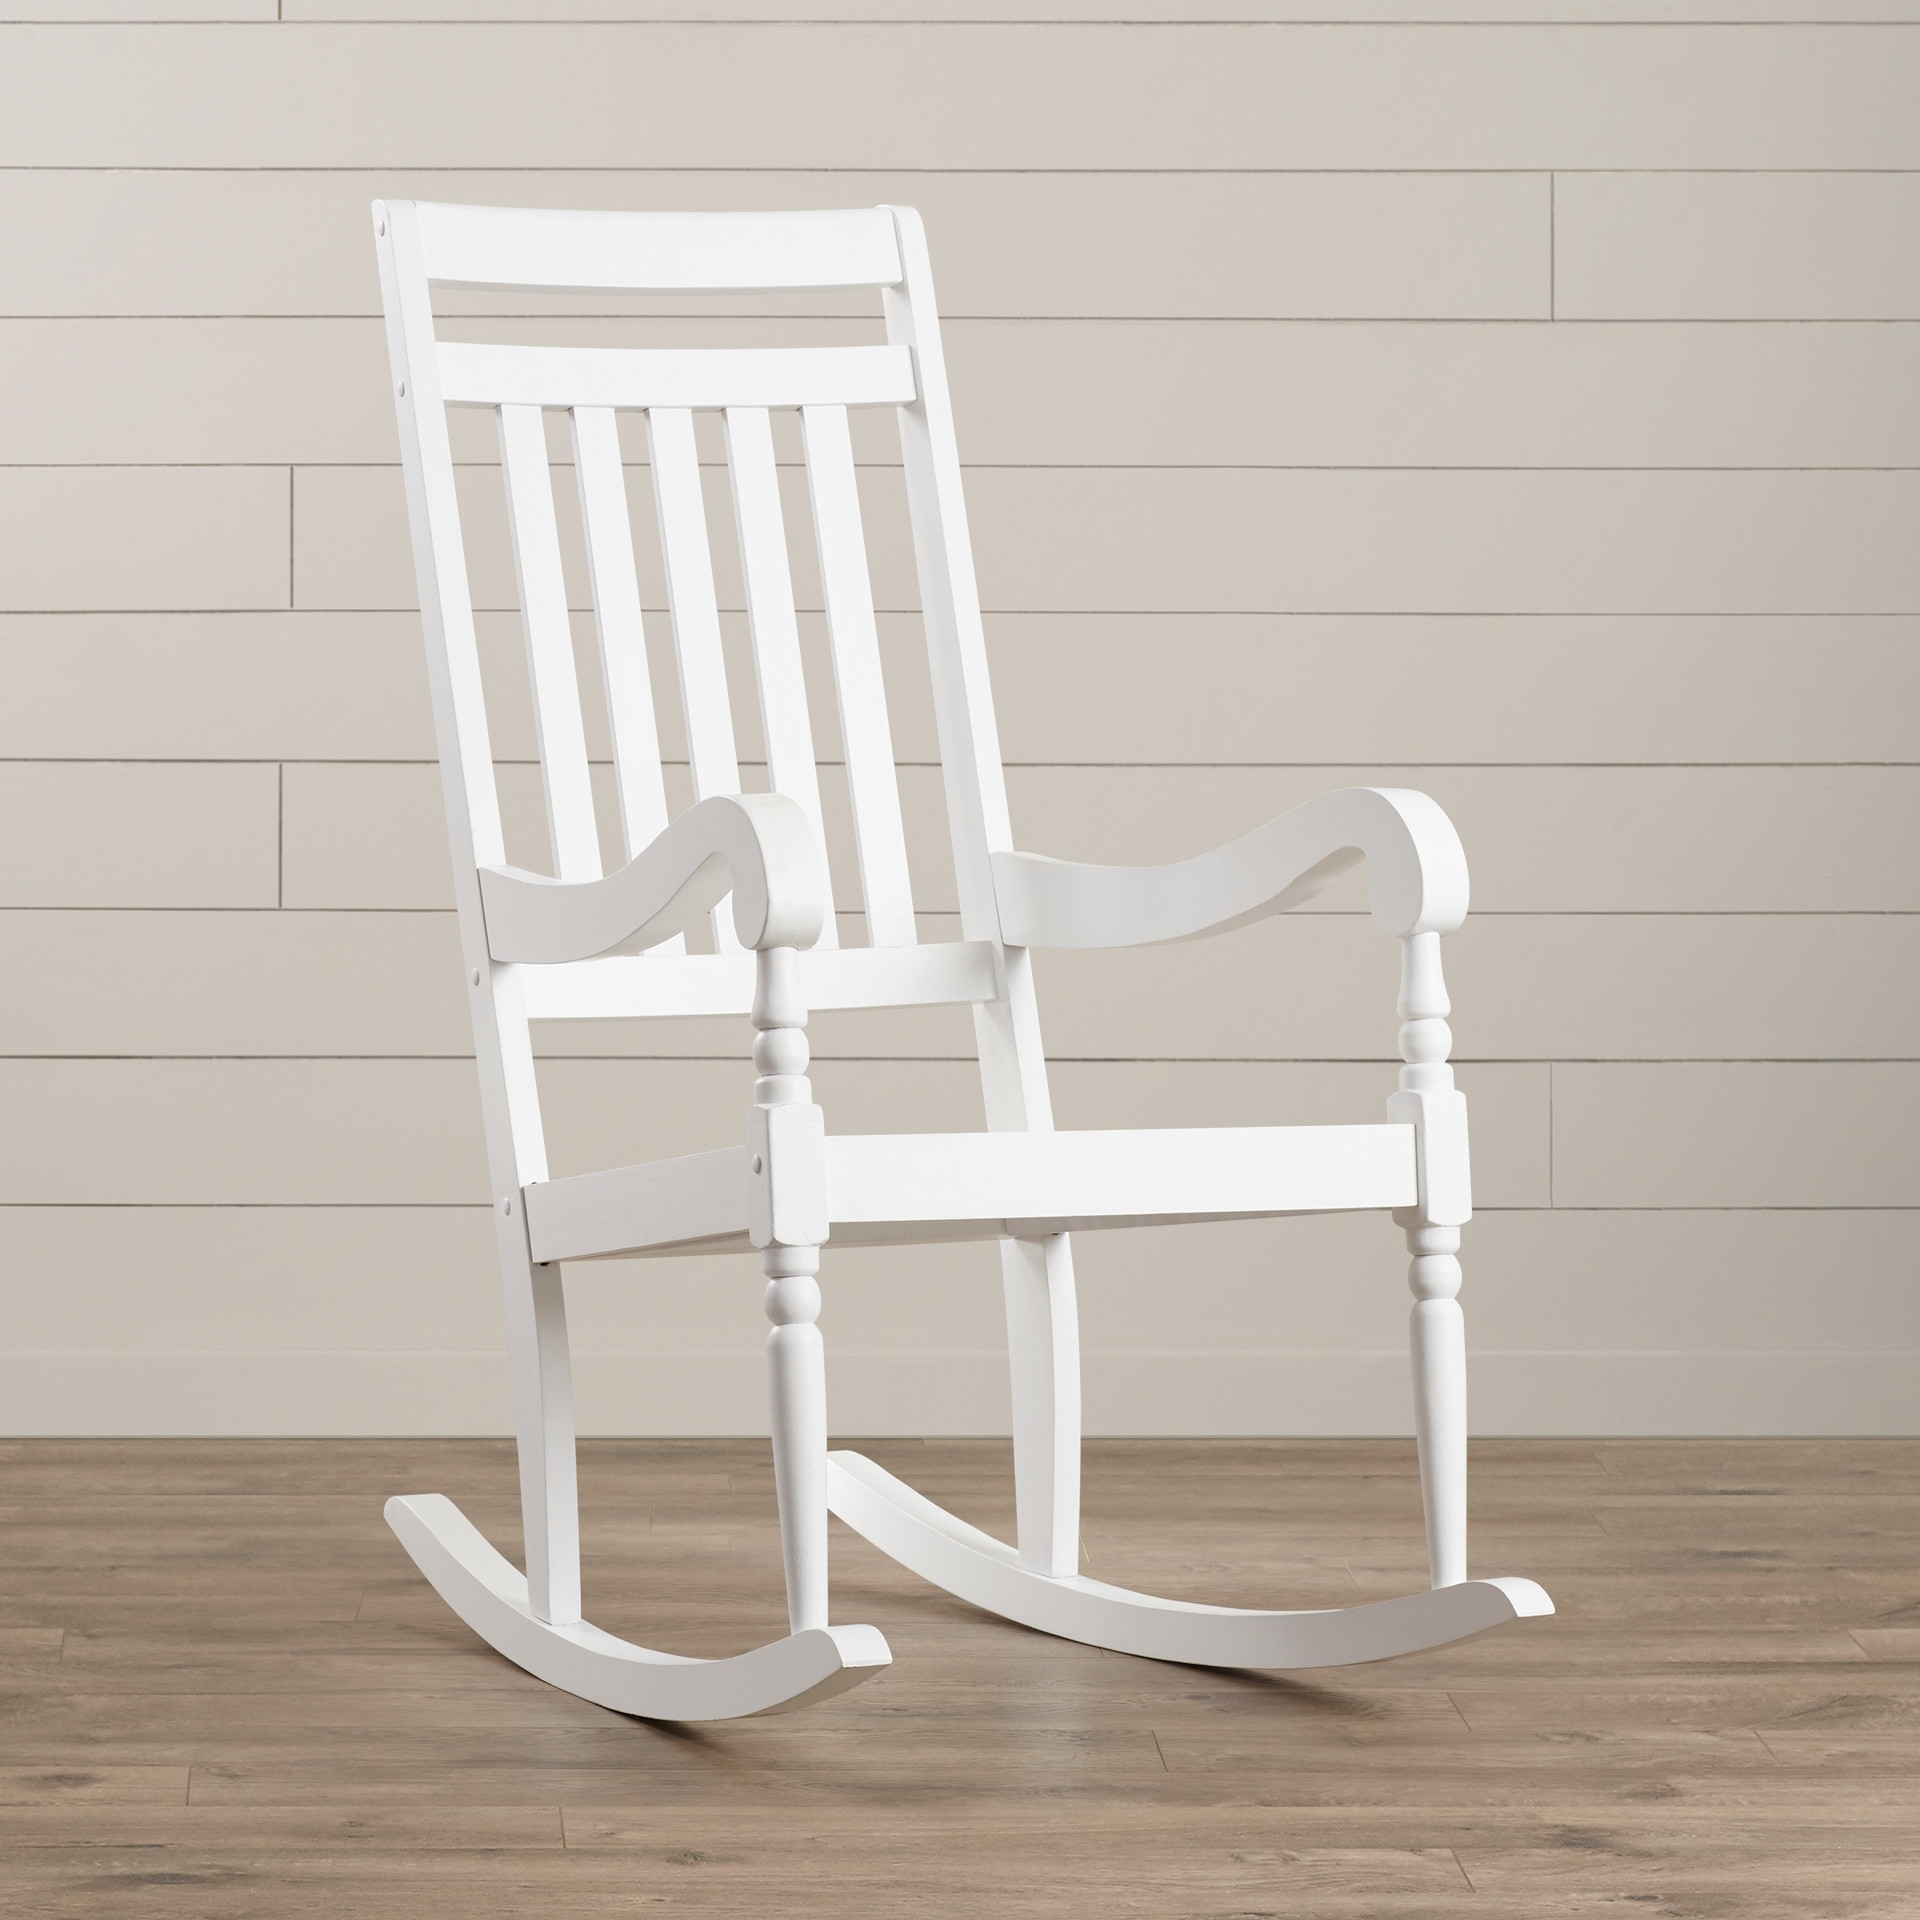 Rocking Chairs Wayfair Aileen Chair ~ Clipgoo With Latest Rocking Chairs At Wayfair (View 10 of 15)